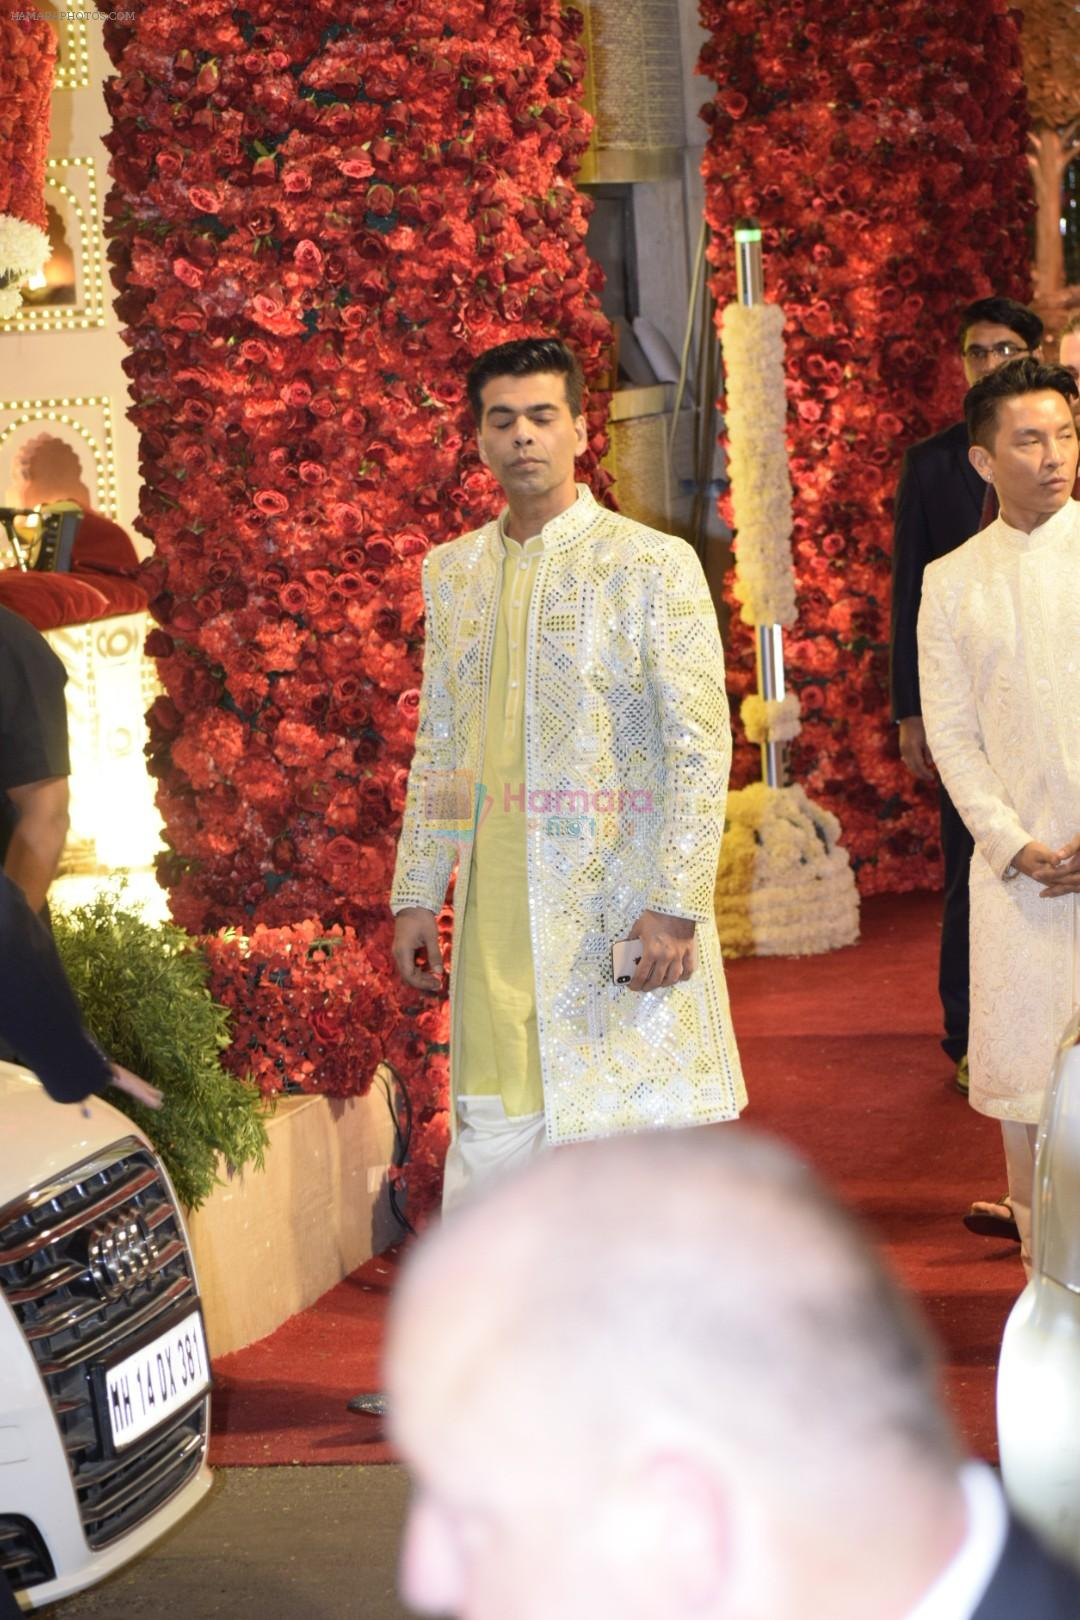 Karan Johar at Isha Ambani and Anand Piramal's wedding on 12th Dec 2018